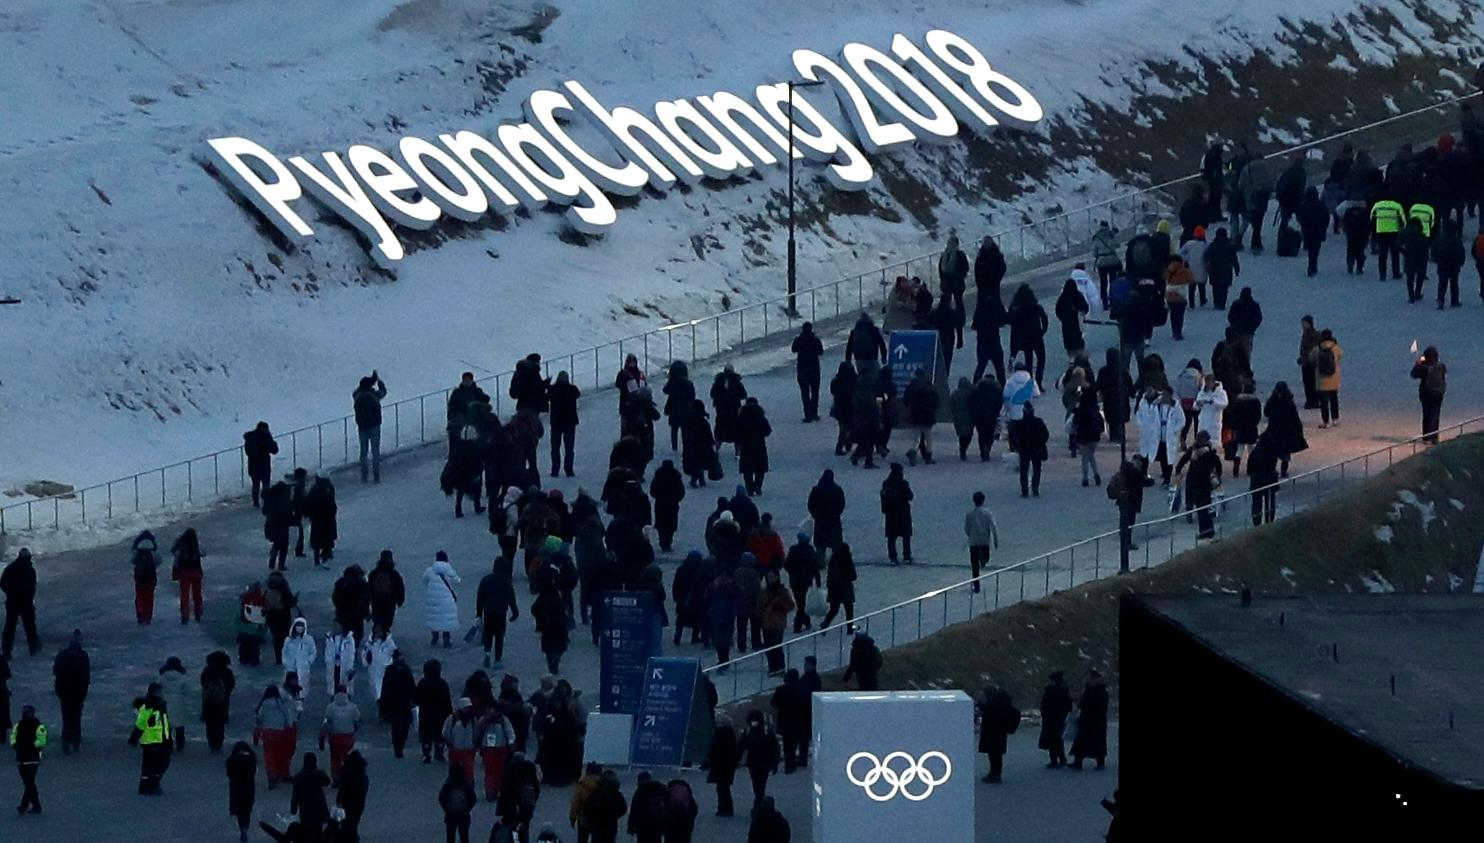 People arrive at the Olympic Stadium ahead of the opening ceremony at the 2018 Winter Olympics in Pyeongchang, South Korea, Friday, Feb. 9, 2018. (AP Photo/Kirsty Wigglesworth)